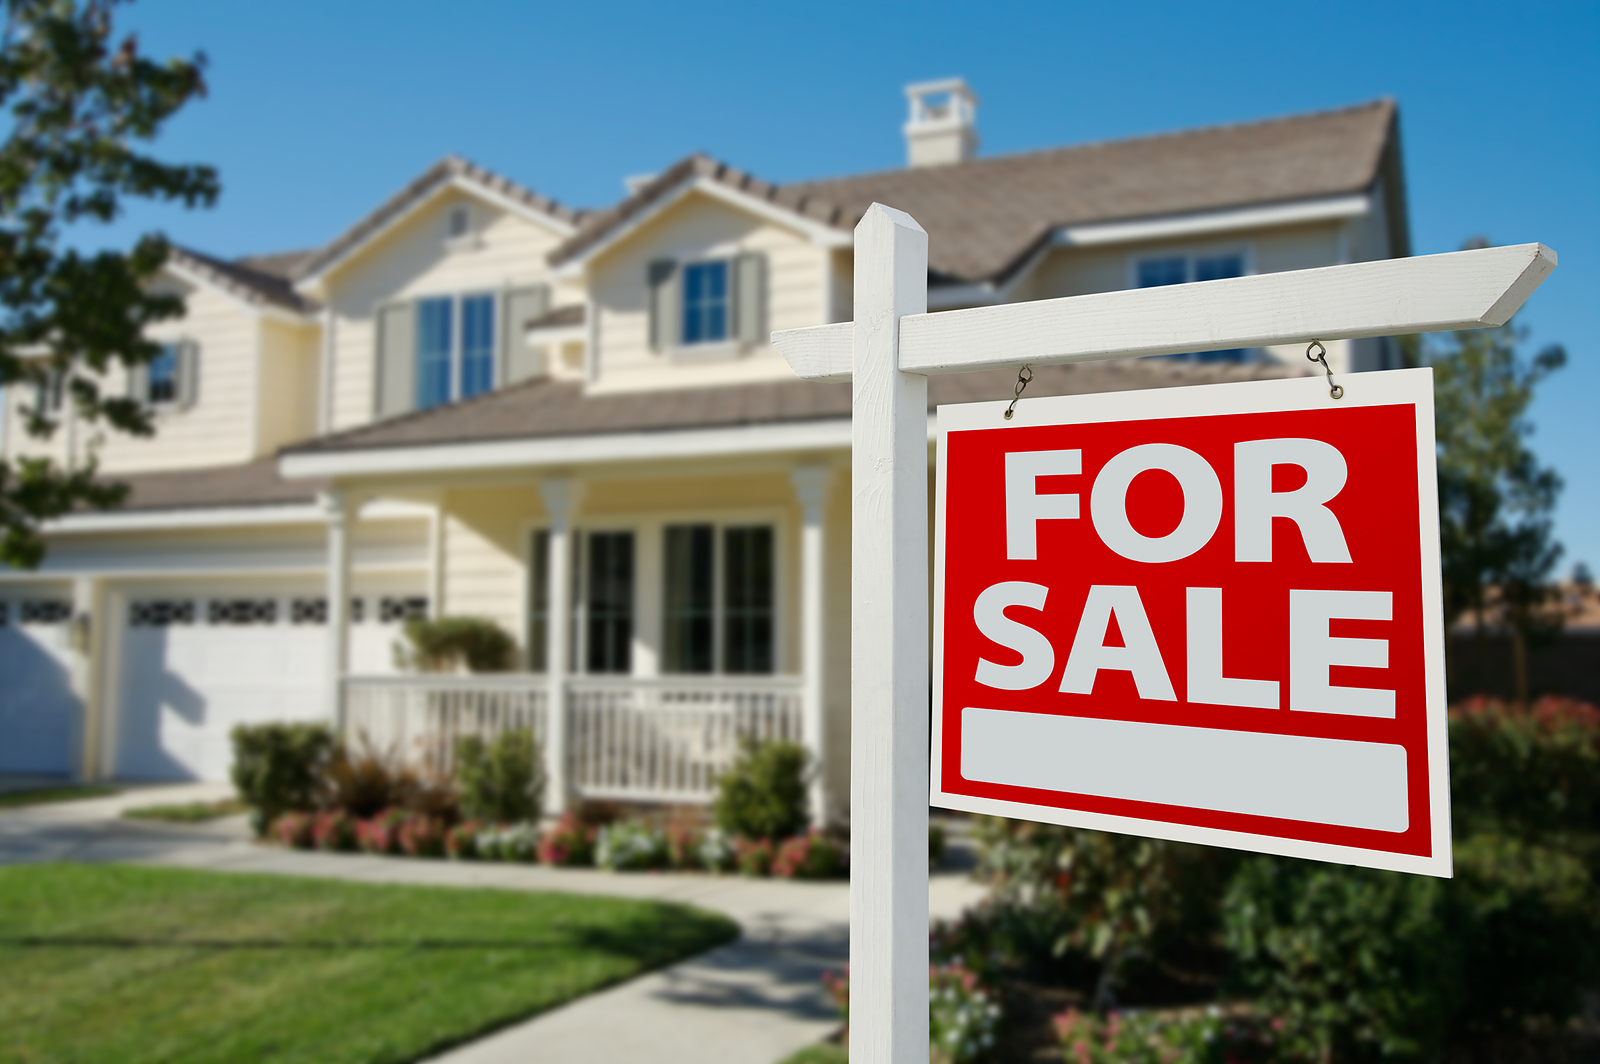 5 Steps of Closing the Real Estate Deal Efficiently